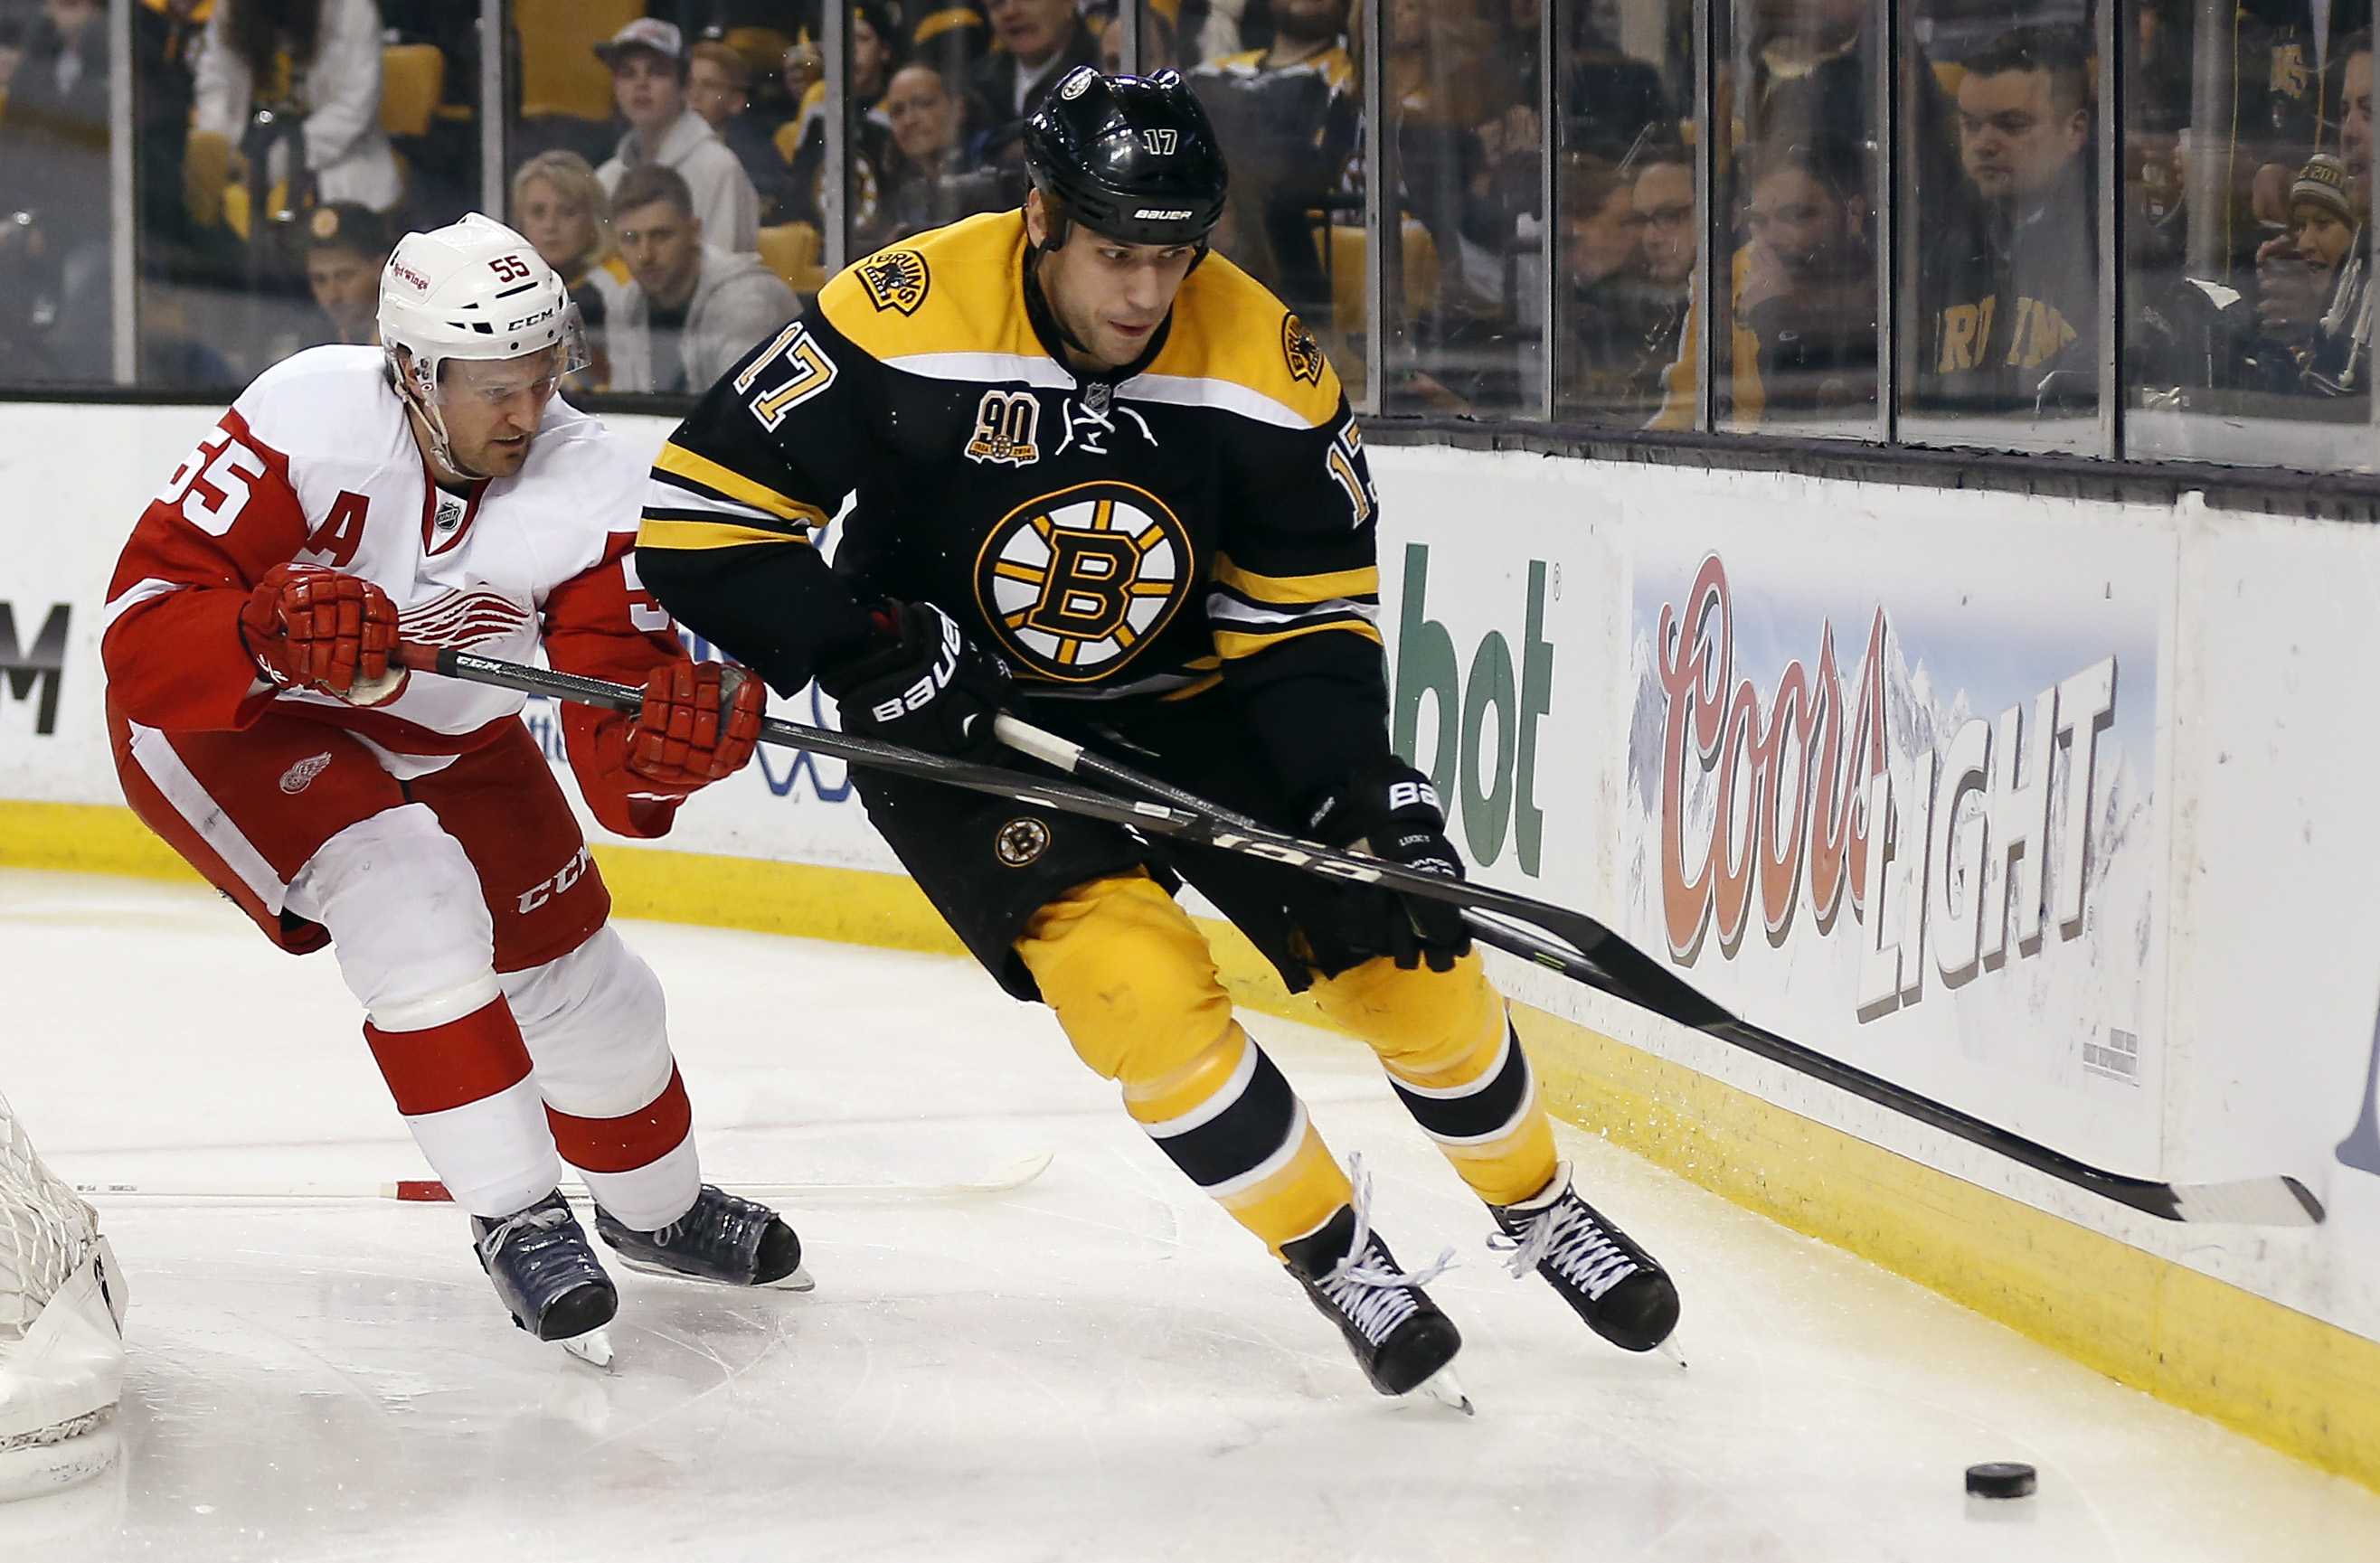 Boston Bruins' Milan Lucic (17) keeps the puck from Detroit Red Wings' Niklas Kronwall during the second period of Game 1 of a first-round NHL playoff hockey series in Boston on Friday, April 18, 2014